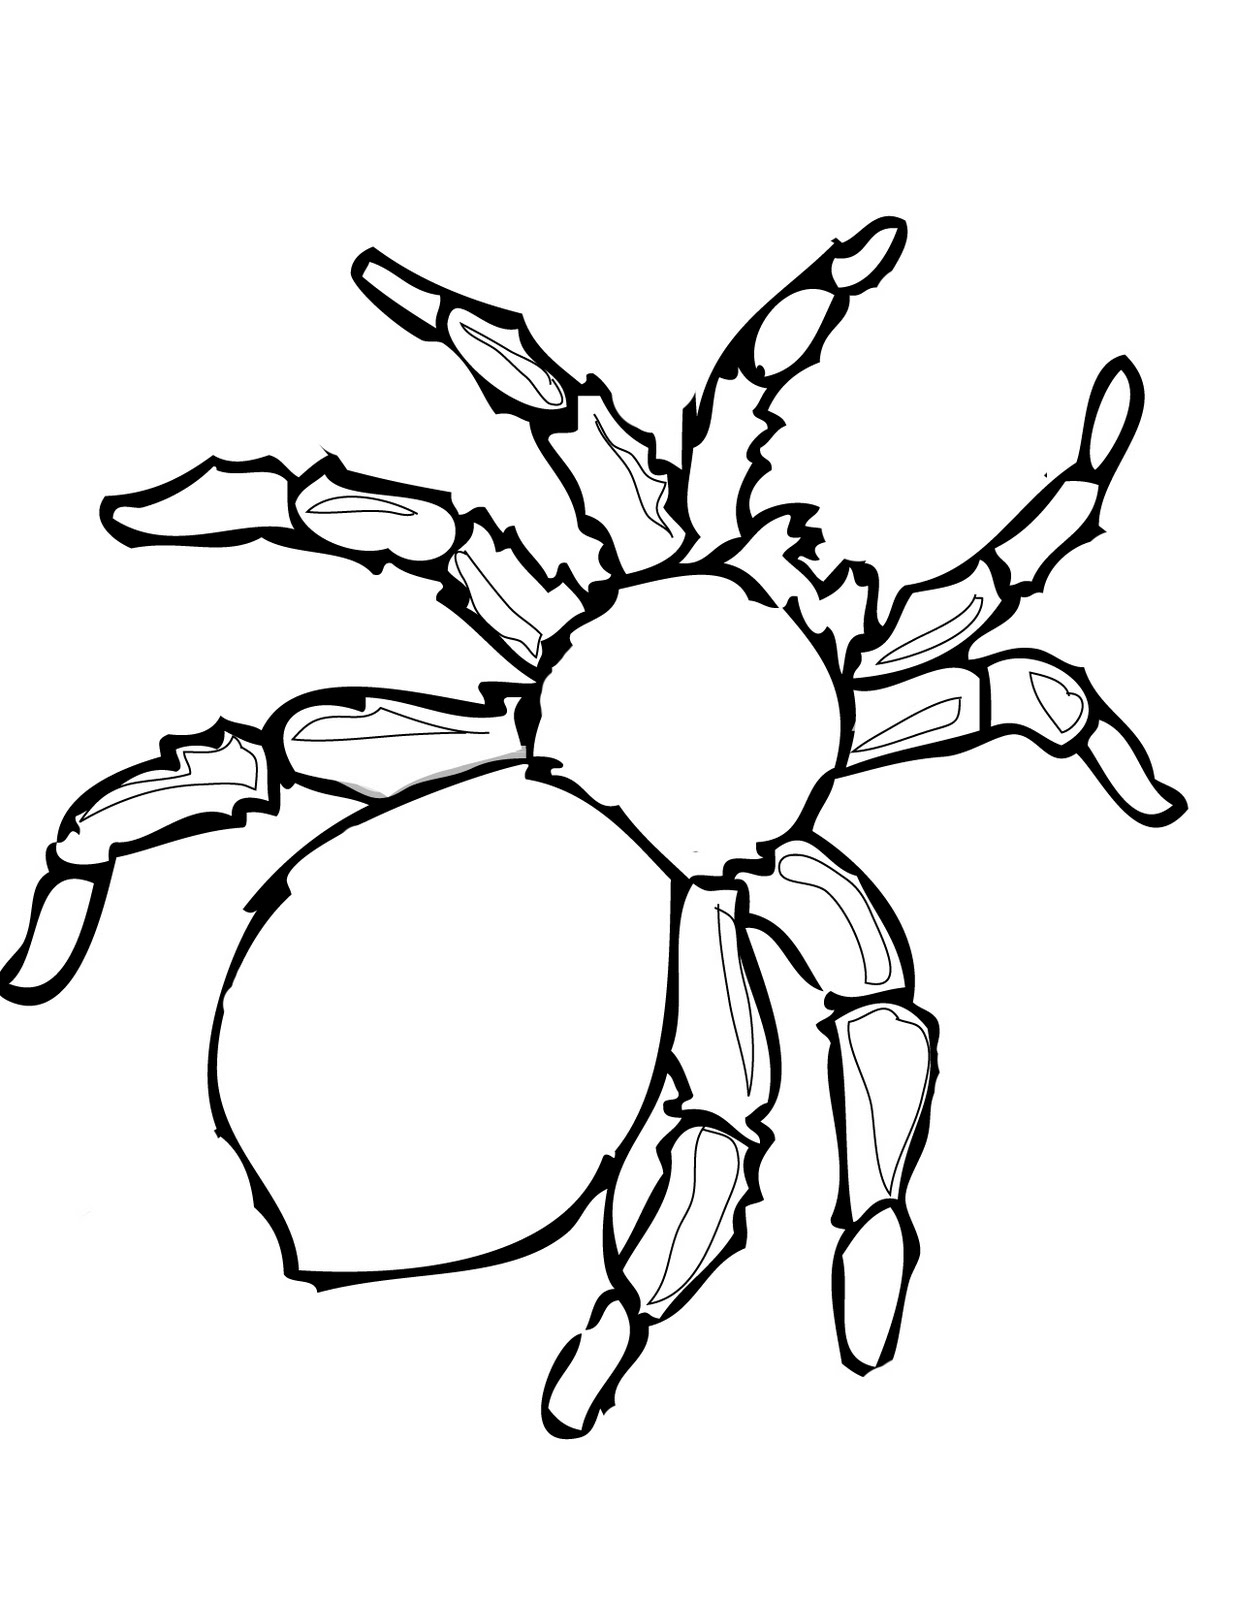 spider coloring top 10 free printable spider coloring pages online coloring spider